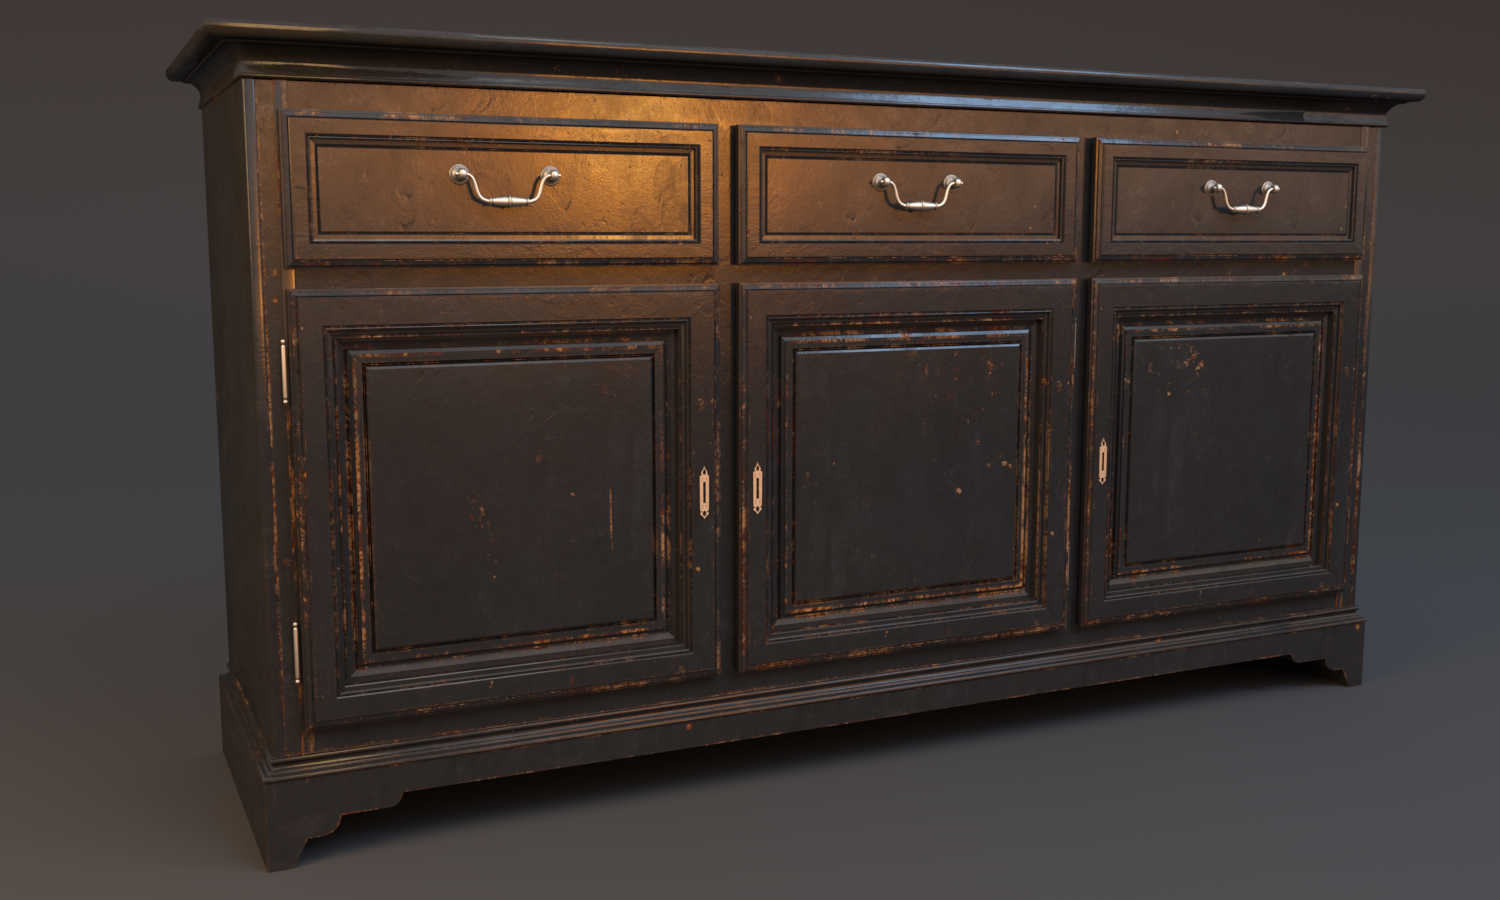 Wood_Painted_sideboard_worn-out_Black